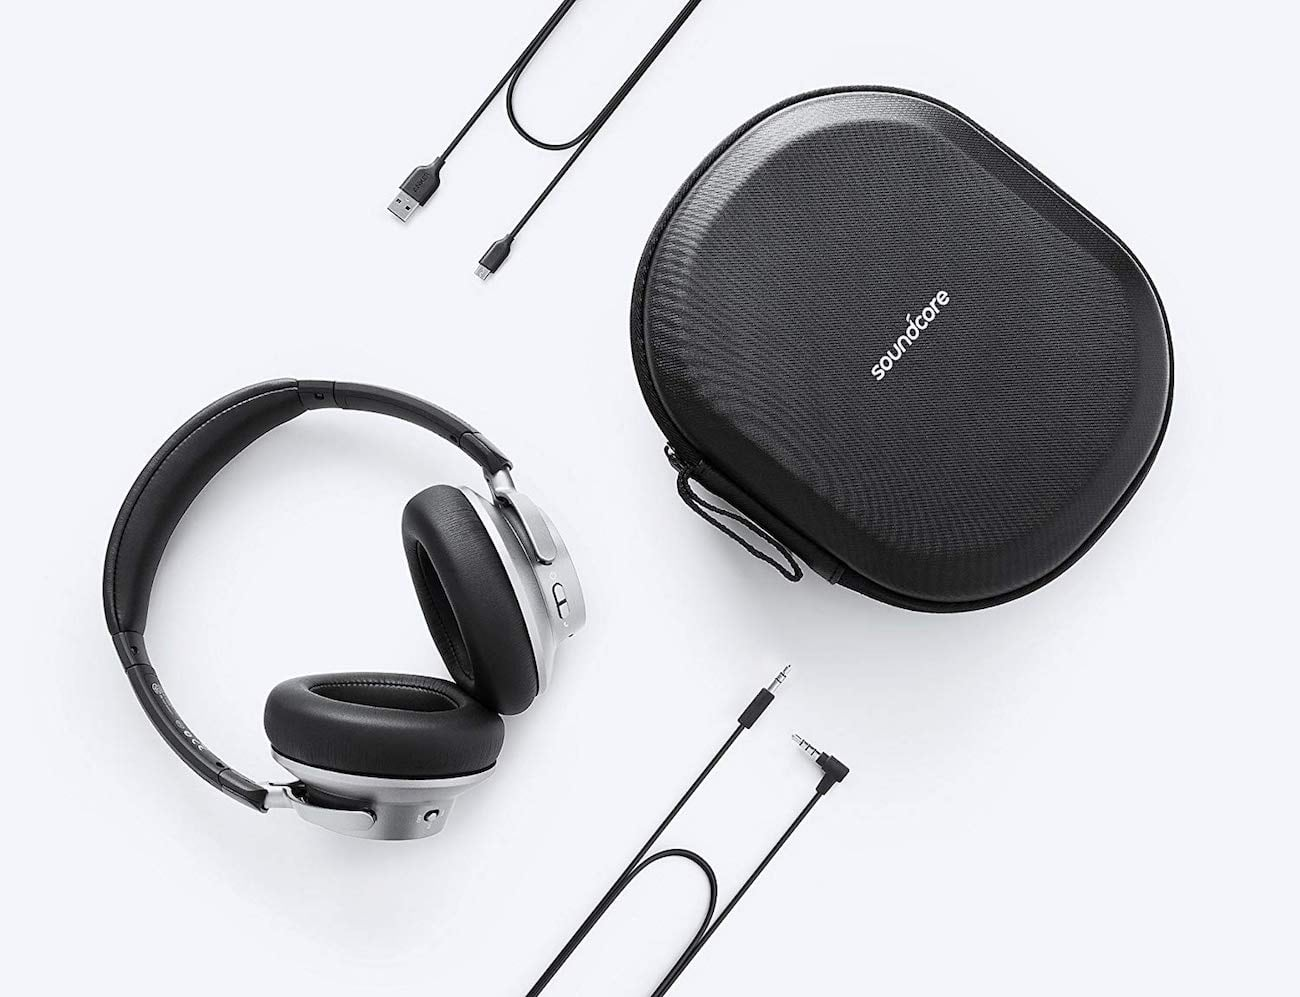 Anker Soundcore Space NC Wireless Noise-Canceling Headphones